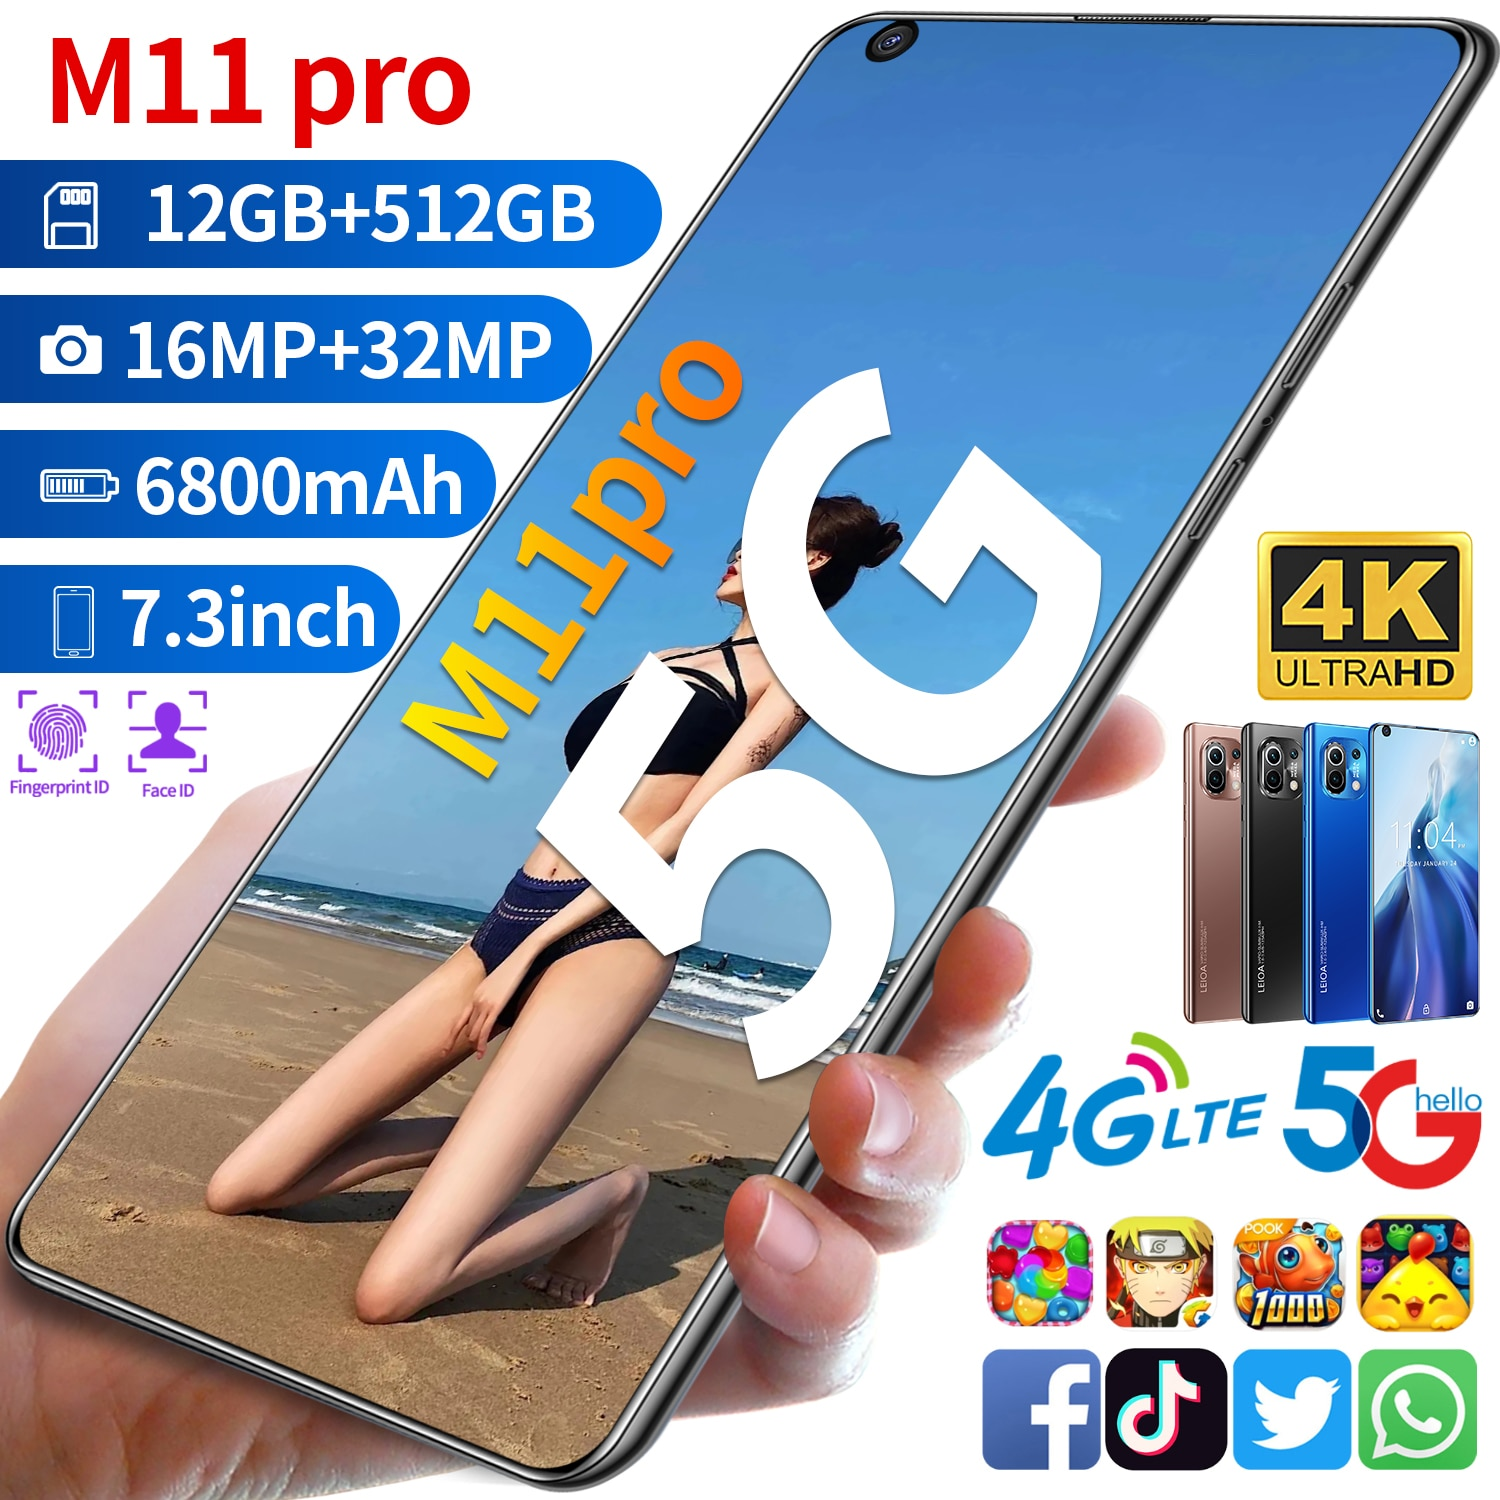 Newest  Xiao M11 Pro 6800mAh 7.3inch  Mobile Phone  Hot Selling  12GB 512GB 10 Core Newest Cellphone